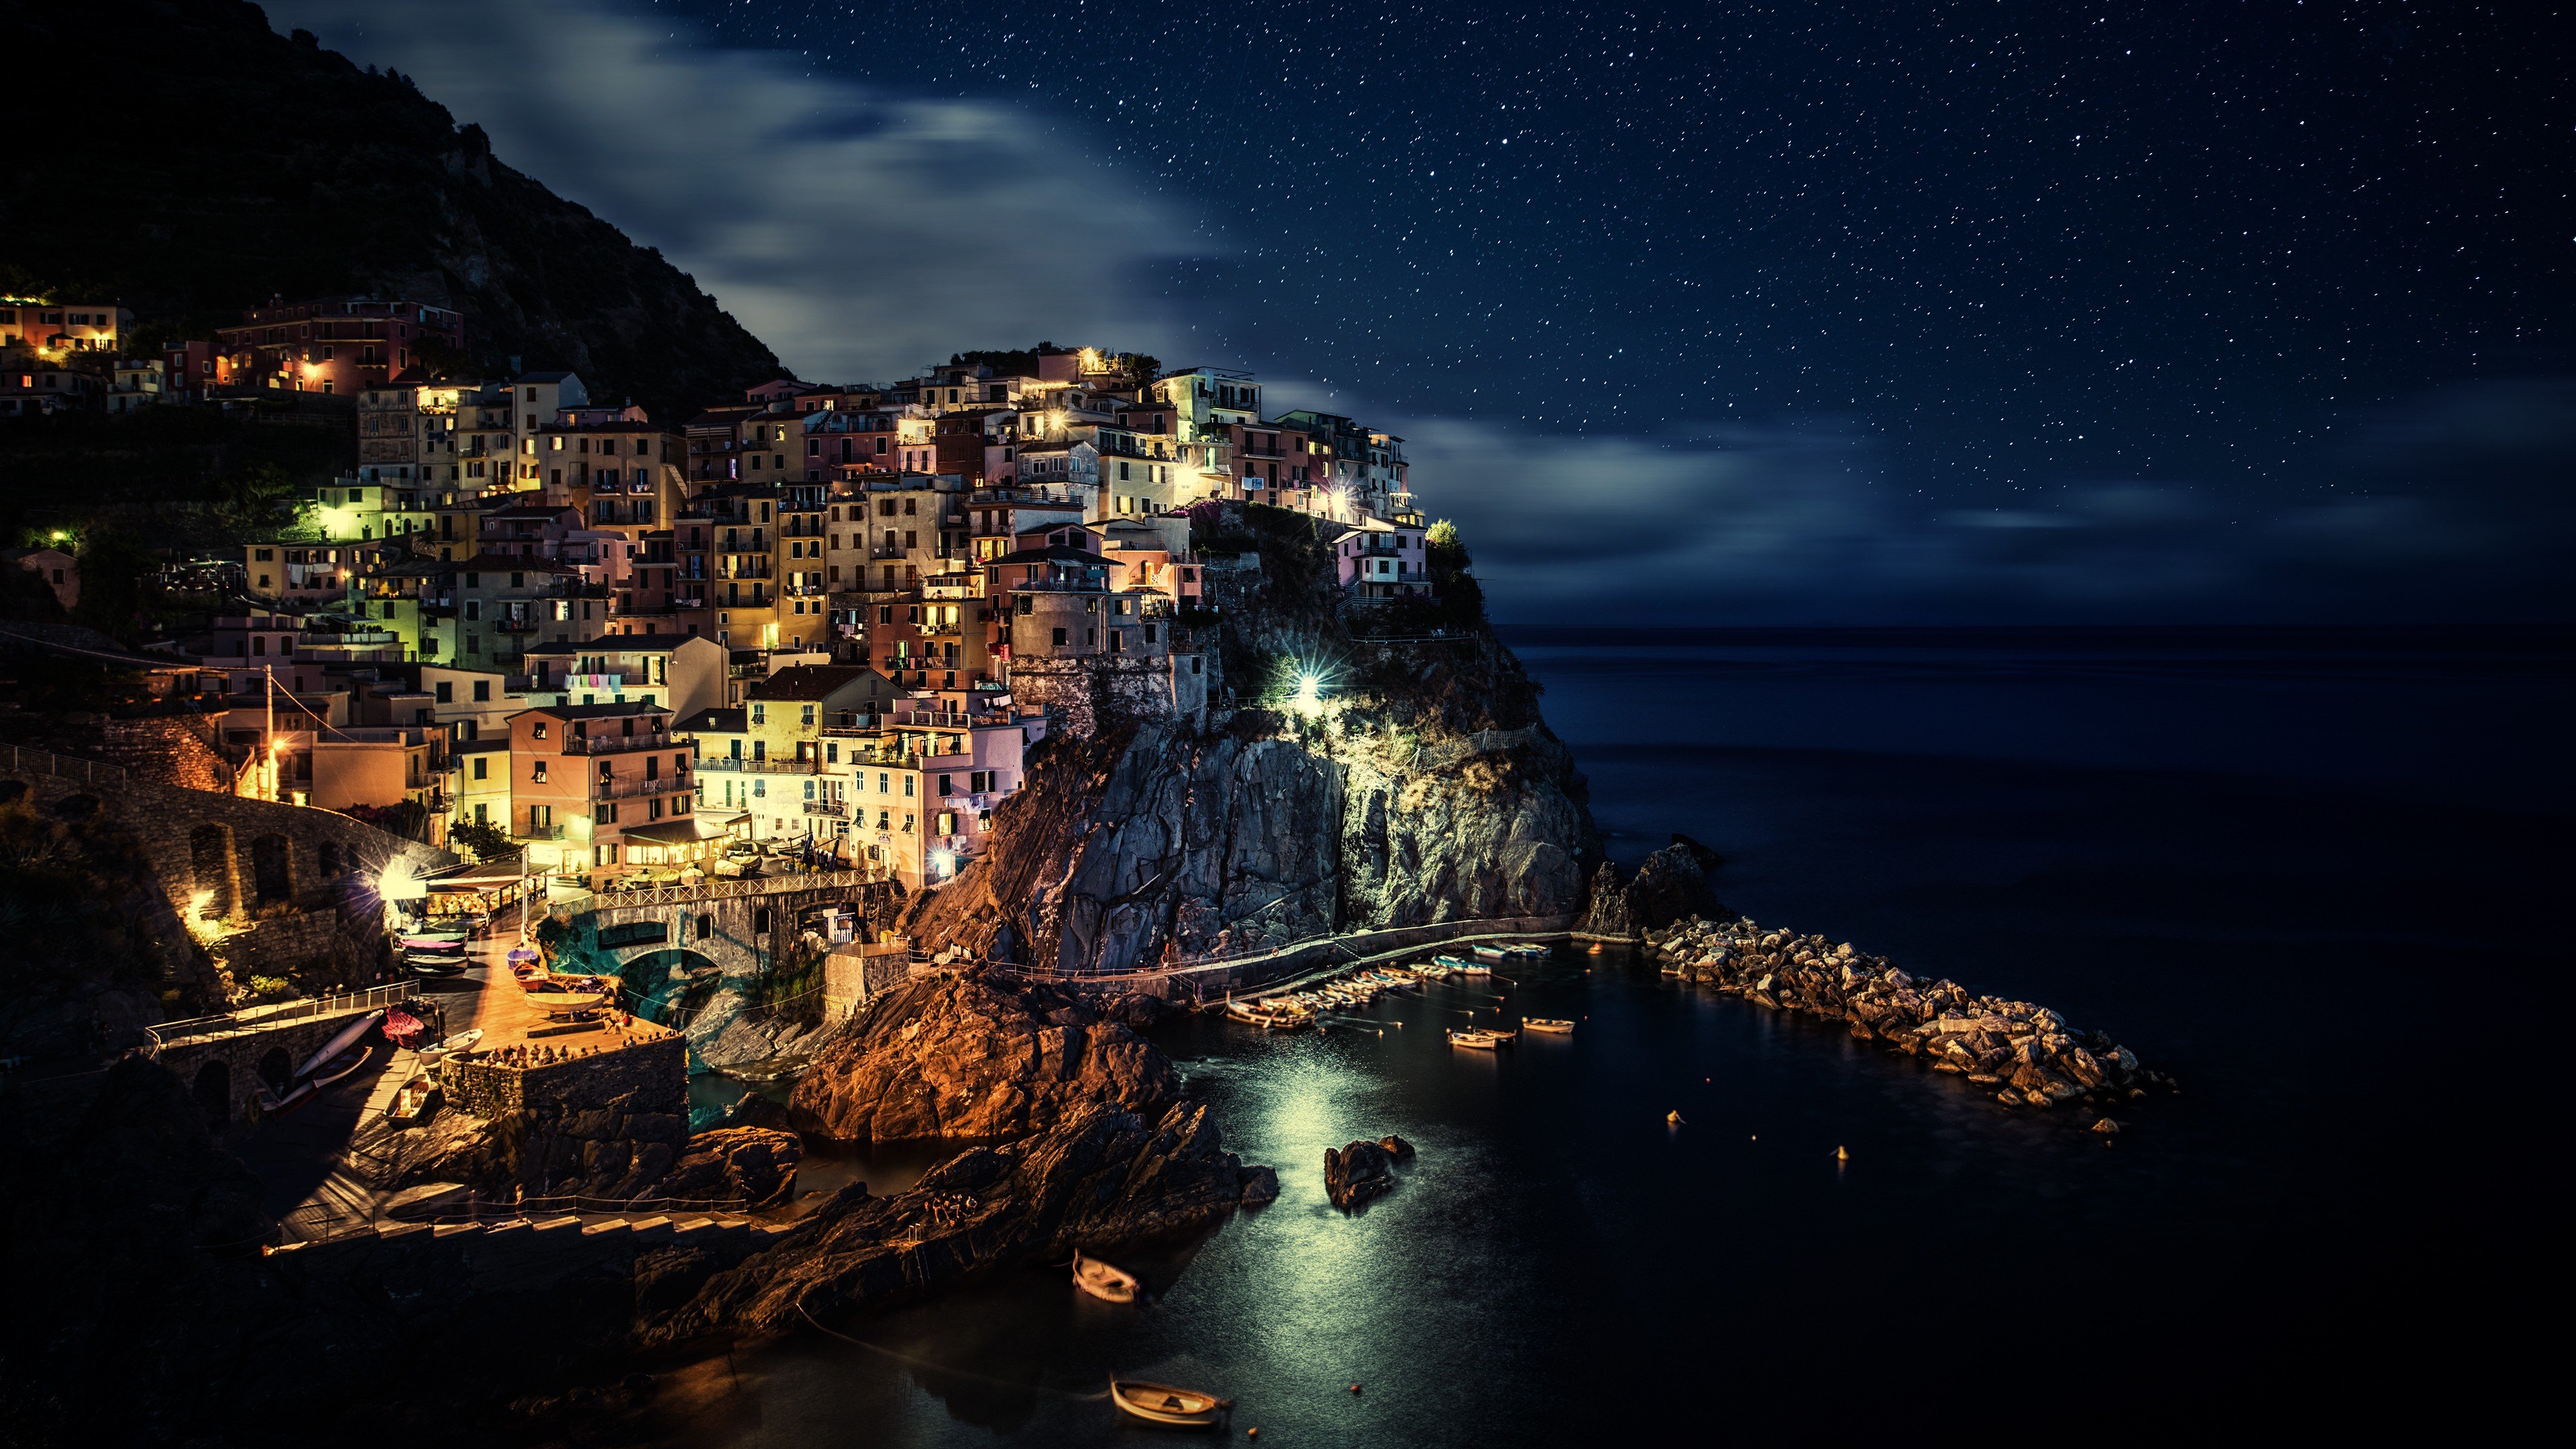 45 manarola hd wallpapers background images wallpaper for Wallpaper italia